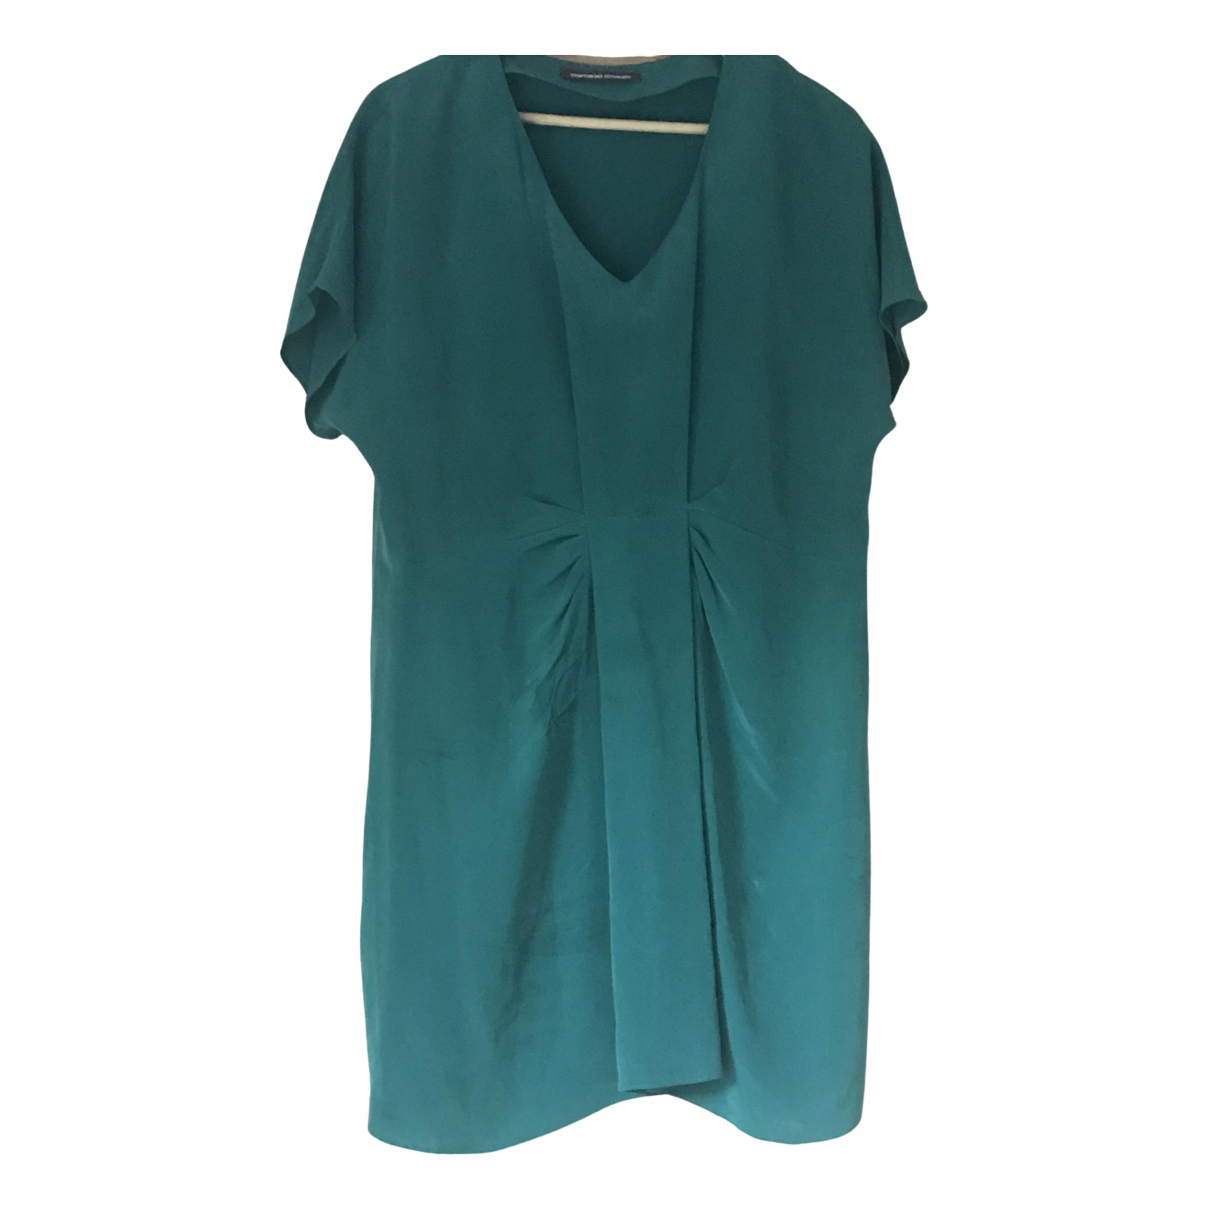 Comptoir Des Cotonniers N Green Silk dress for Women 12 UK